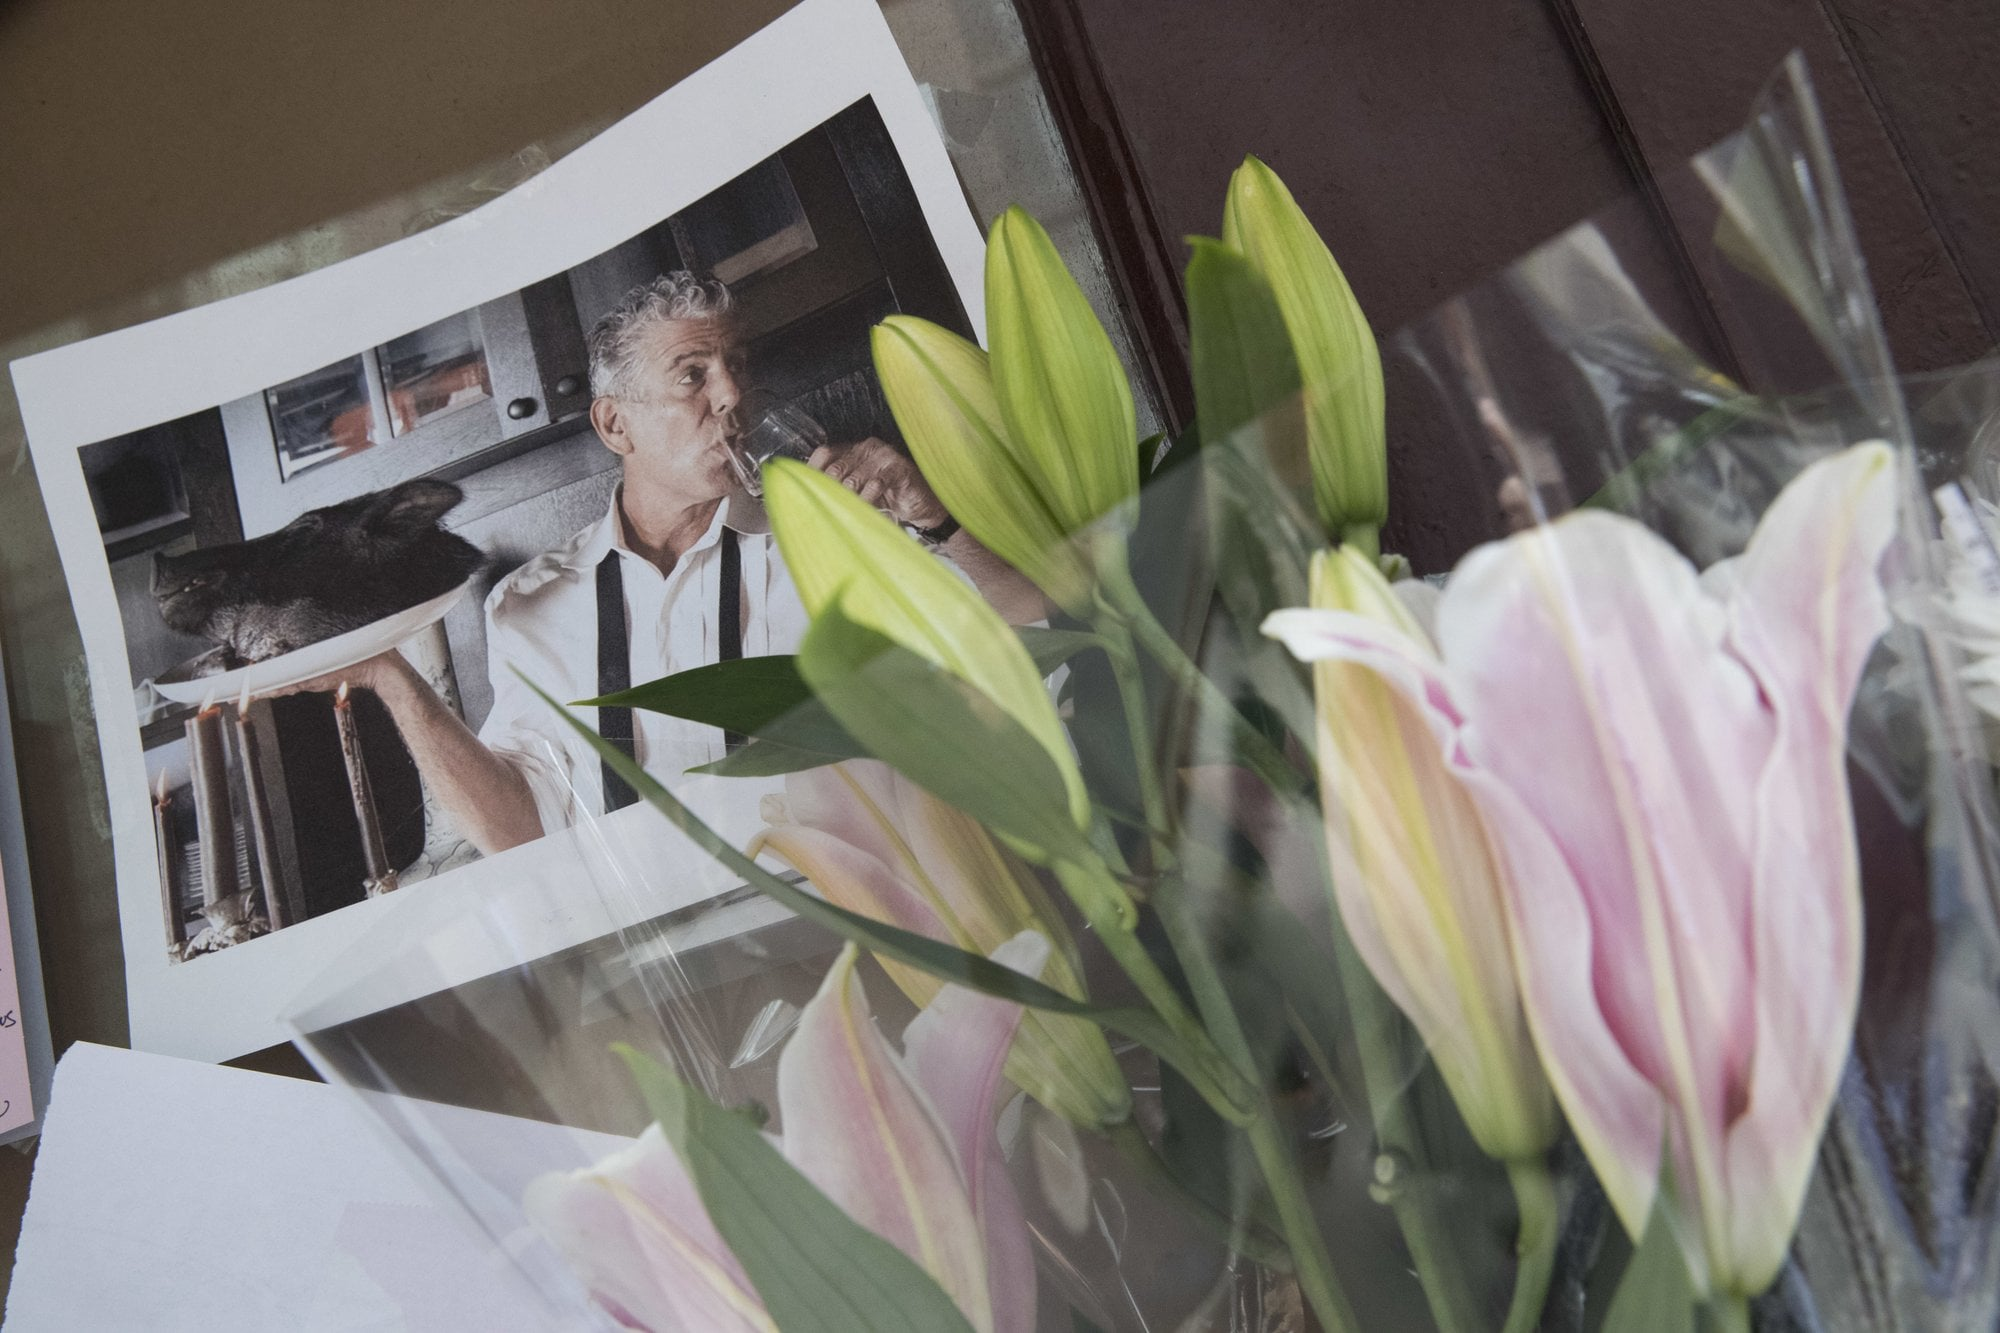 Flowers and a photo of Anthony Bourdain are seen at a make shift memorial outside the building that once housed Le Halles restaurant on Park Avenue, Friday, June 8, 2018, in New York. Bourdain, the celebrity chef and citizen of the world who inspired millions to share his delight in food and the bonds it created, was found dead Friday in his hotel room in France while working on his CNN series on culinary traditions. He was 61. (AP Photo/Mary Altaffer)